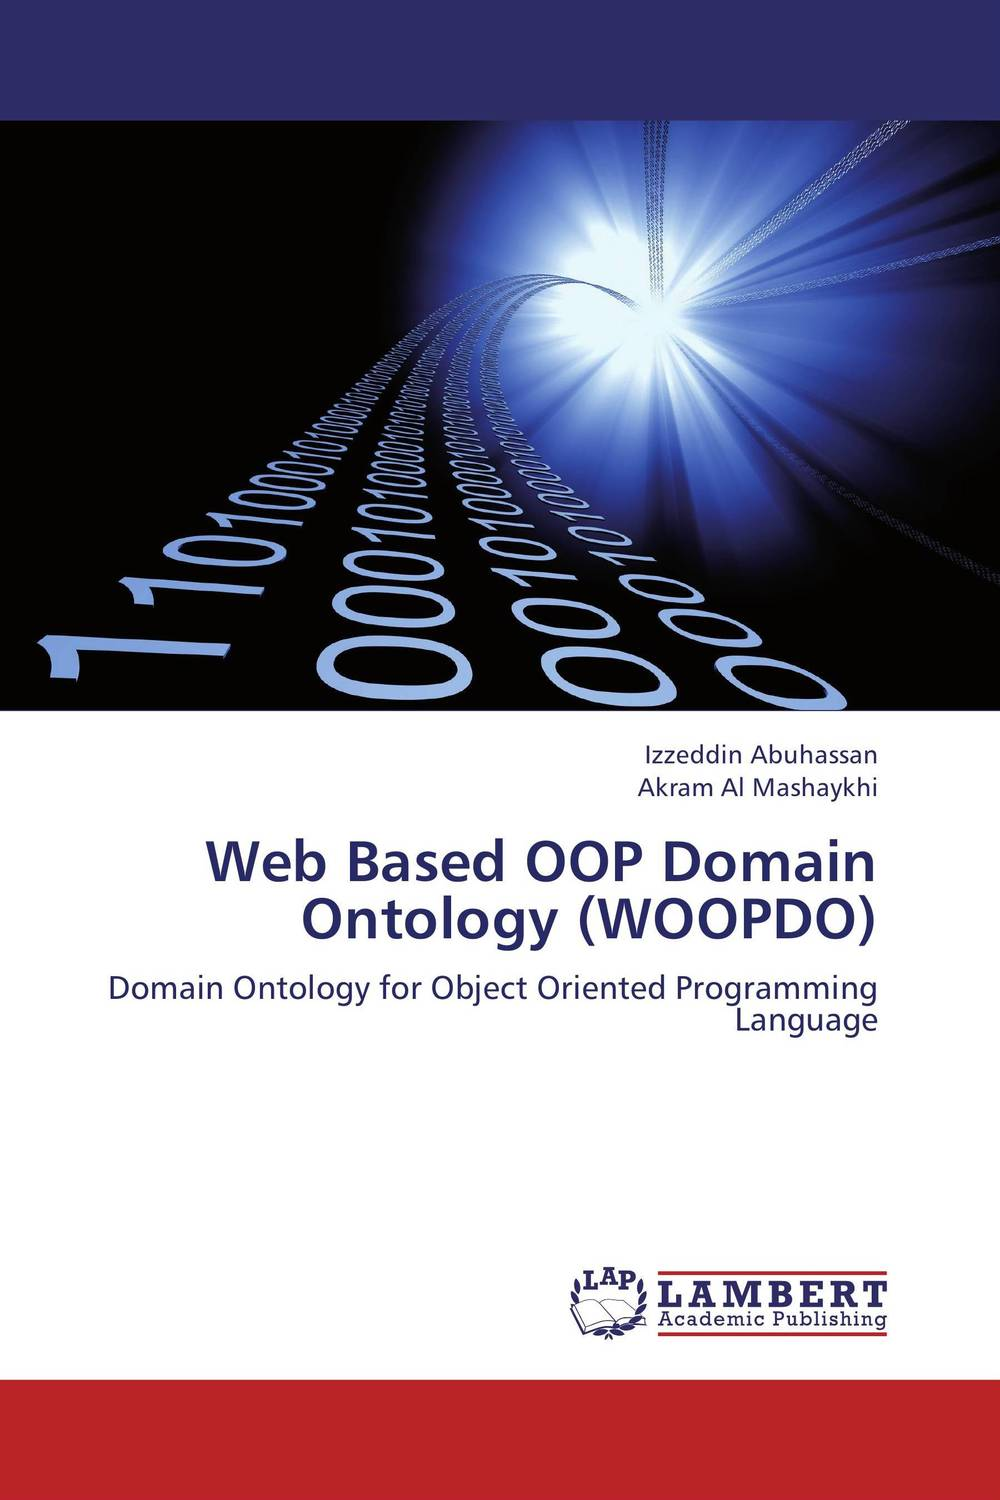 Web Based OOP Domain Ontology (WOOPDO)